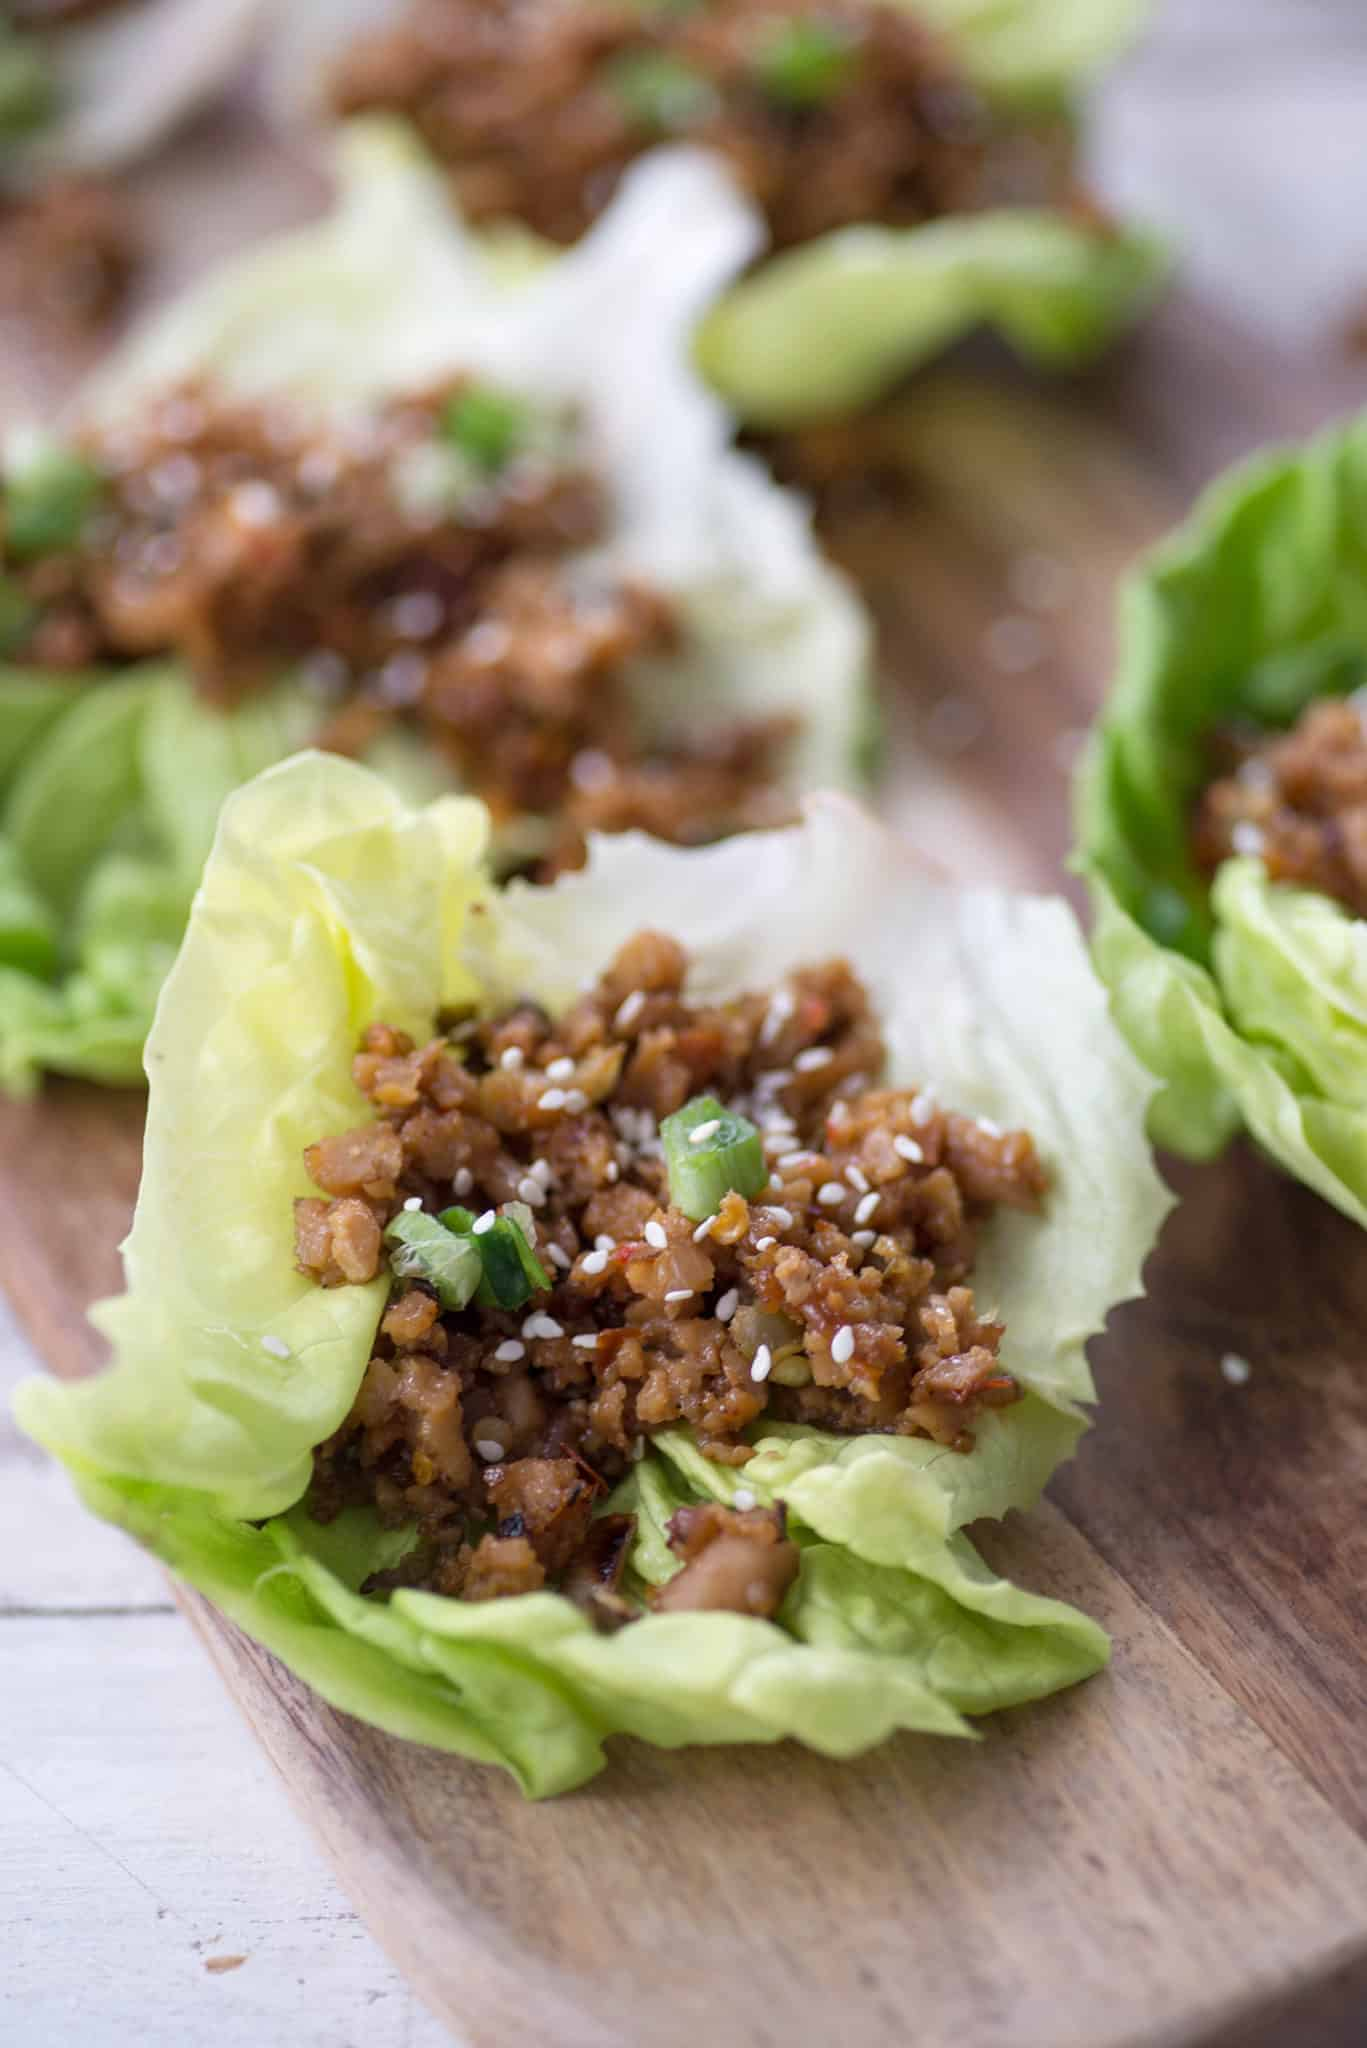 Vegan Thai Larb Lettuce Wraps! These spicy vegan wraps are the perfect healthy dinner. | www.delishknowledge.com